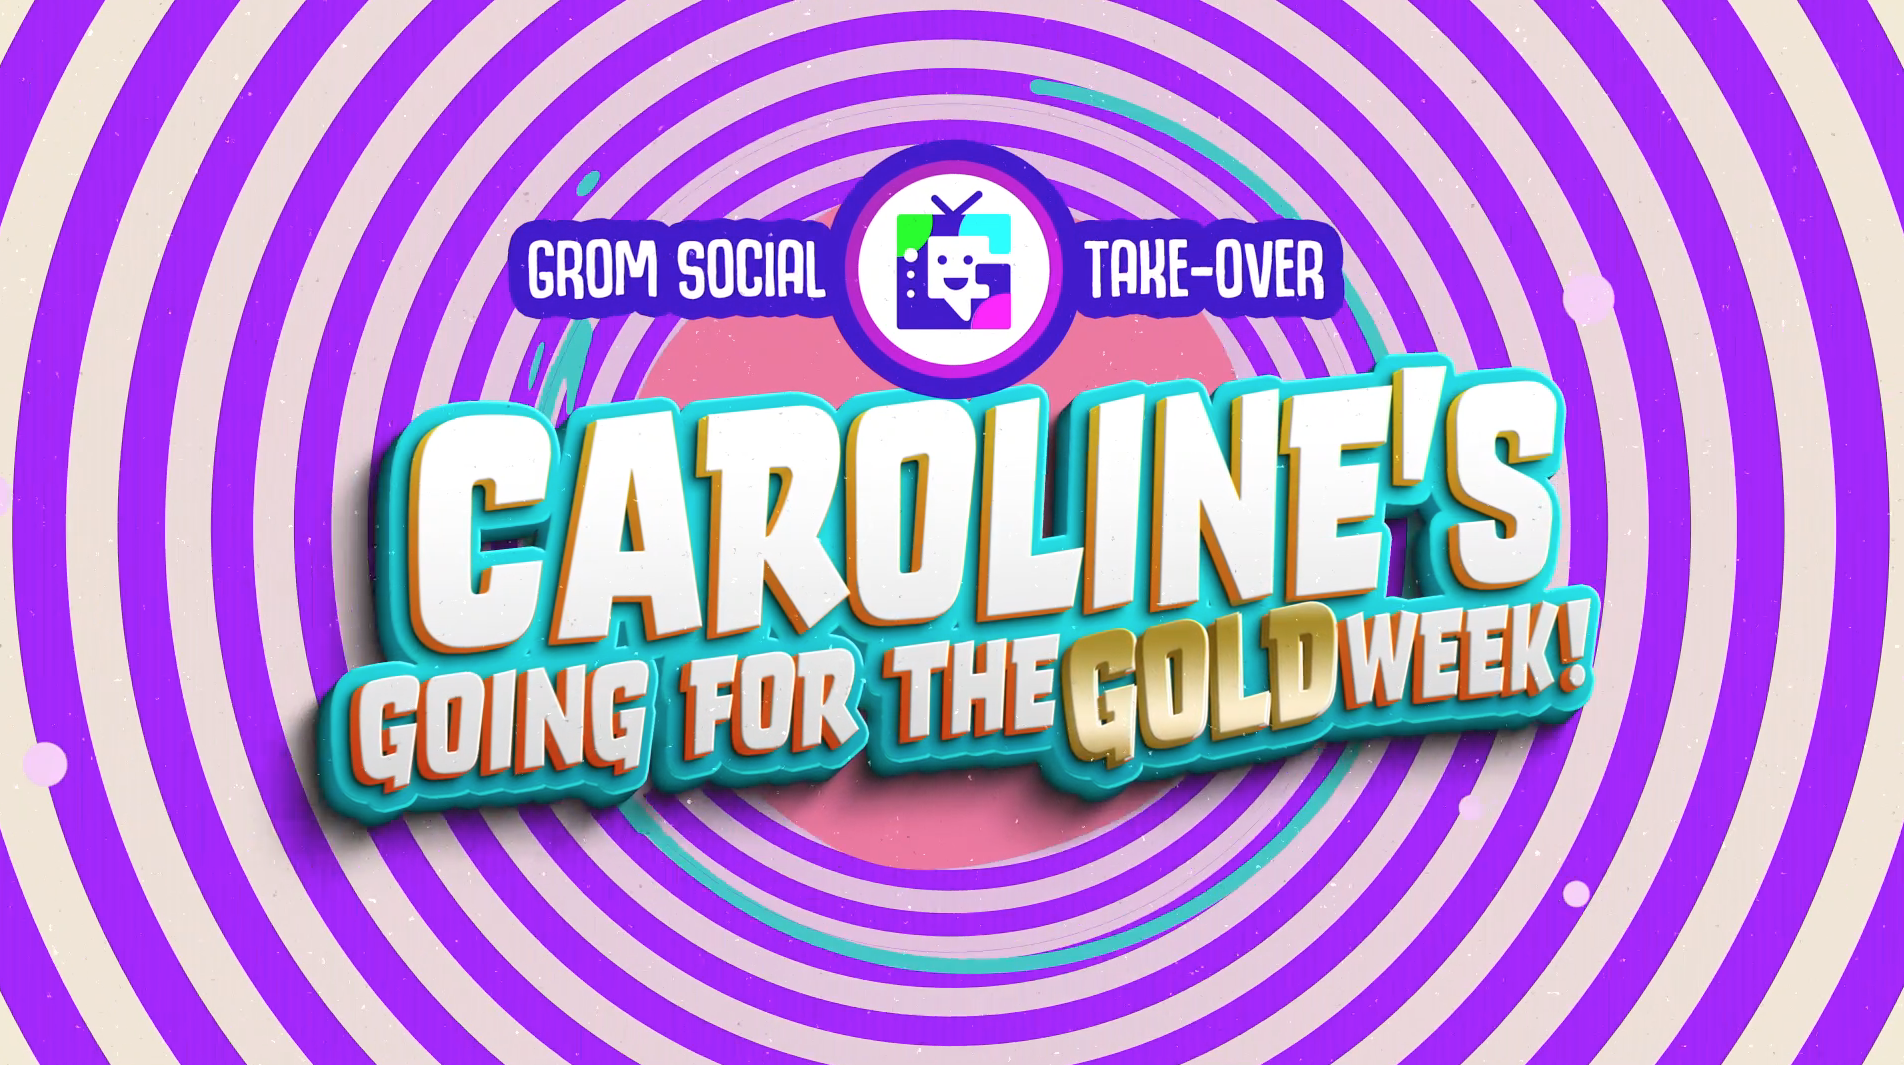 Caroline Marks Going For The Gold Week! 5